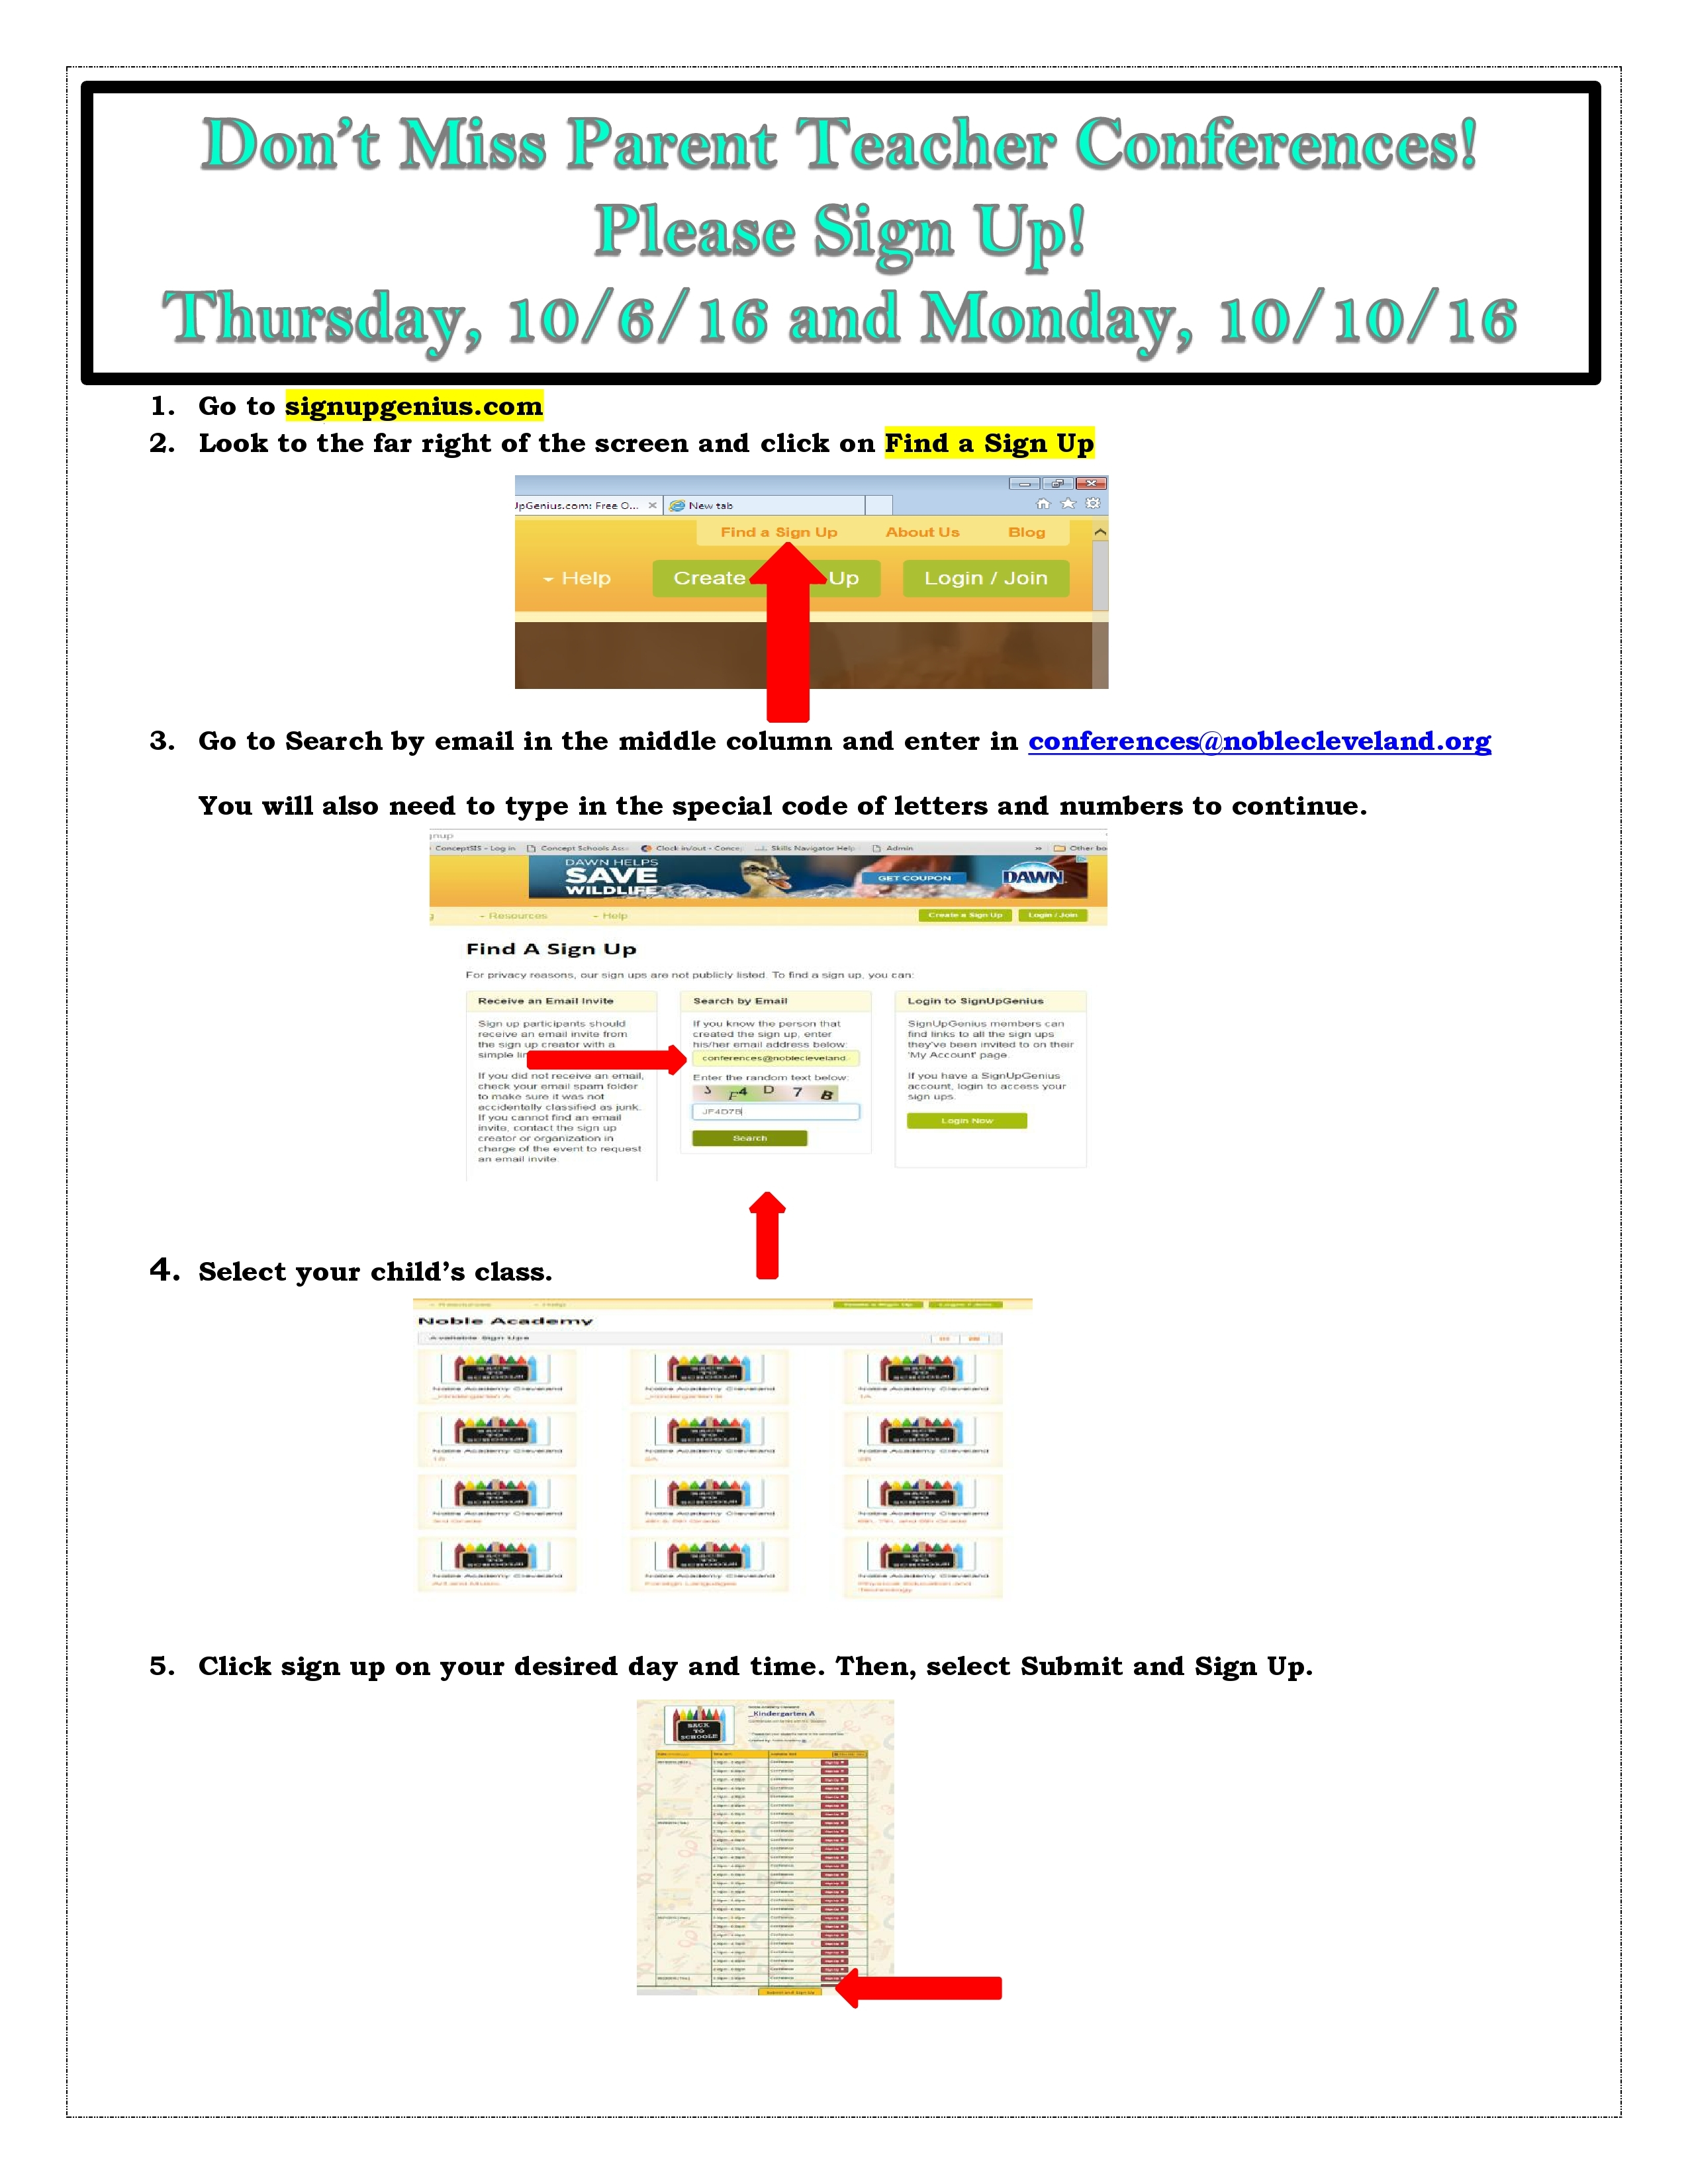 ptc-oct6and10-pdf_page_1